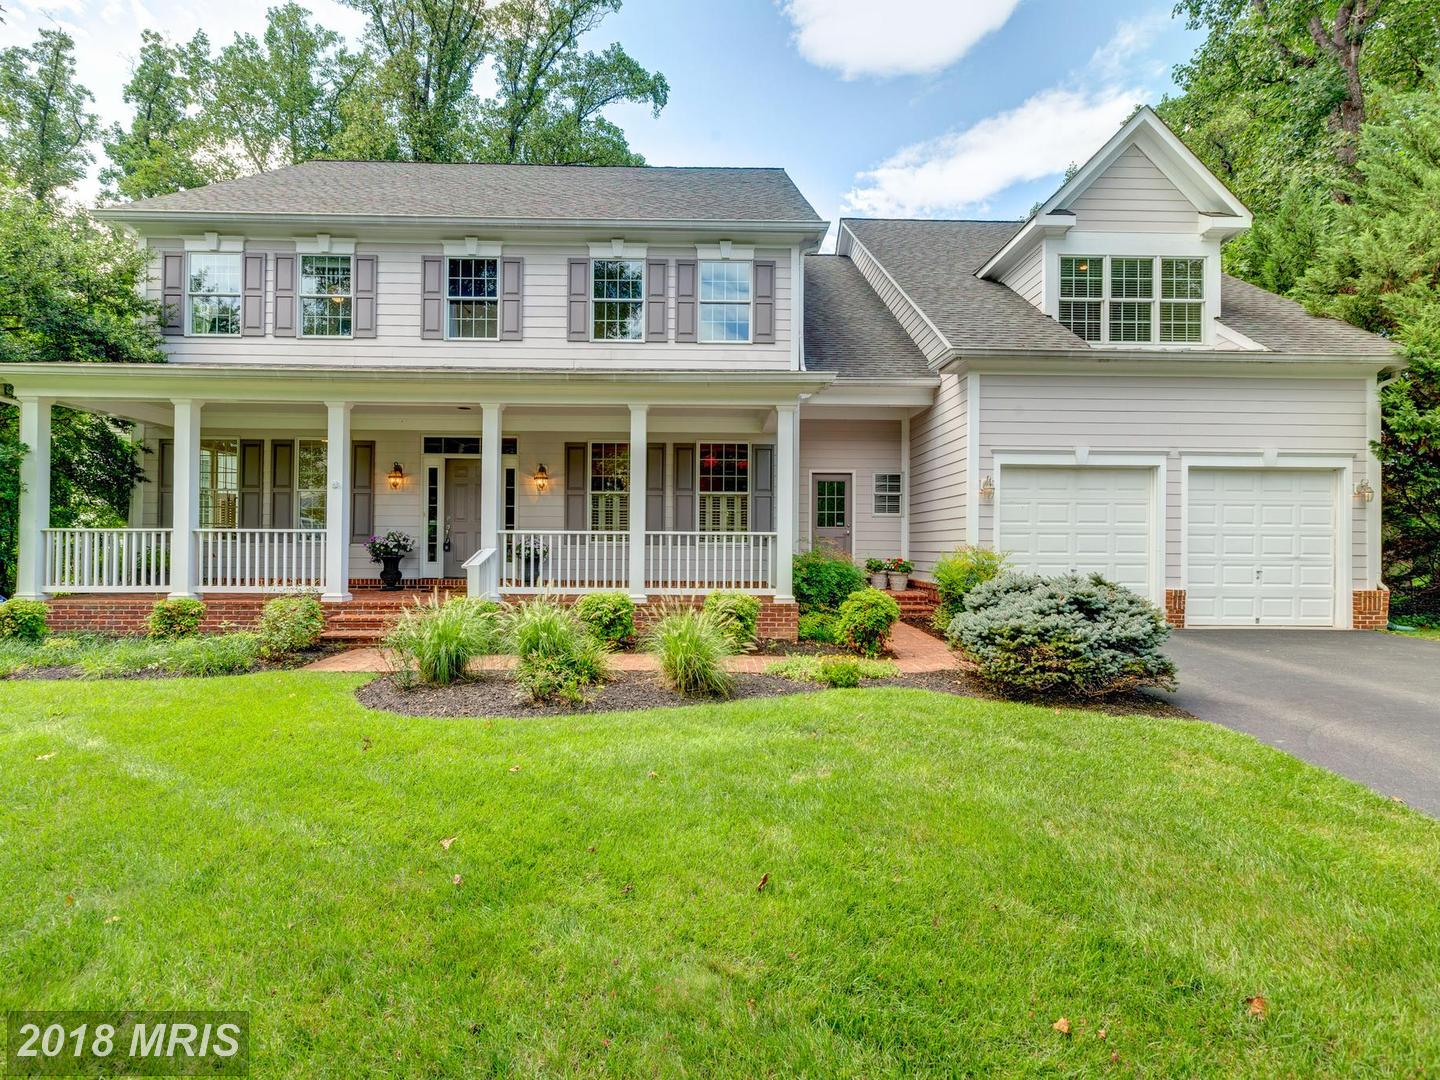 Luxury Homes For Sale in MCLEAN, VA | MCLEAN MLS Search | MCLEAN ...